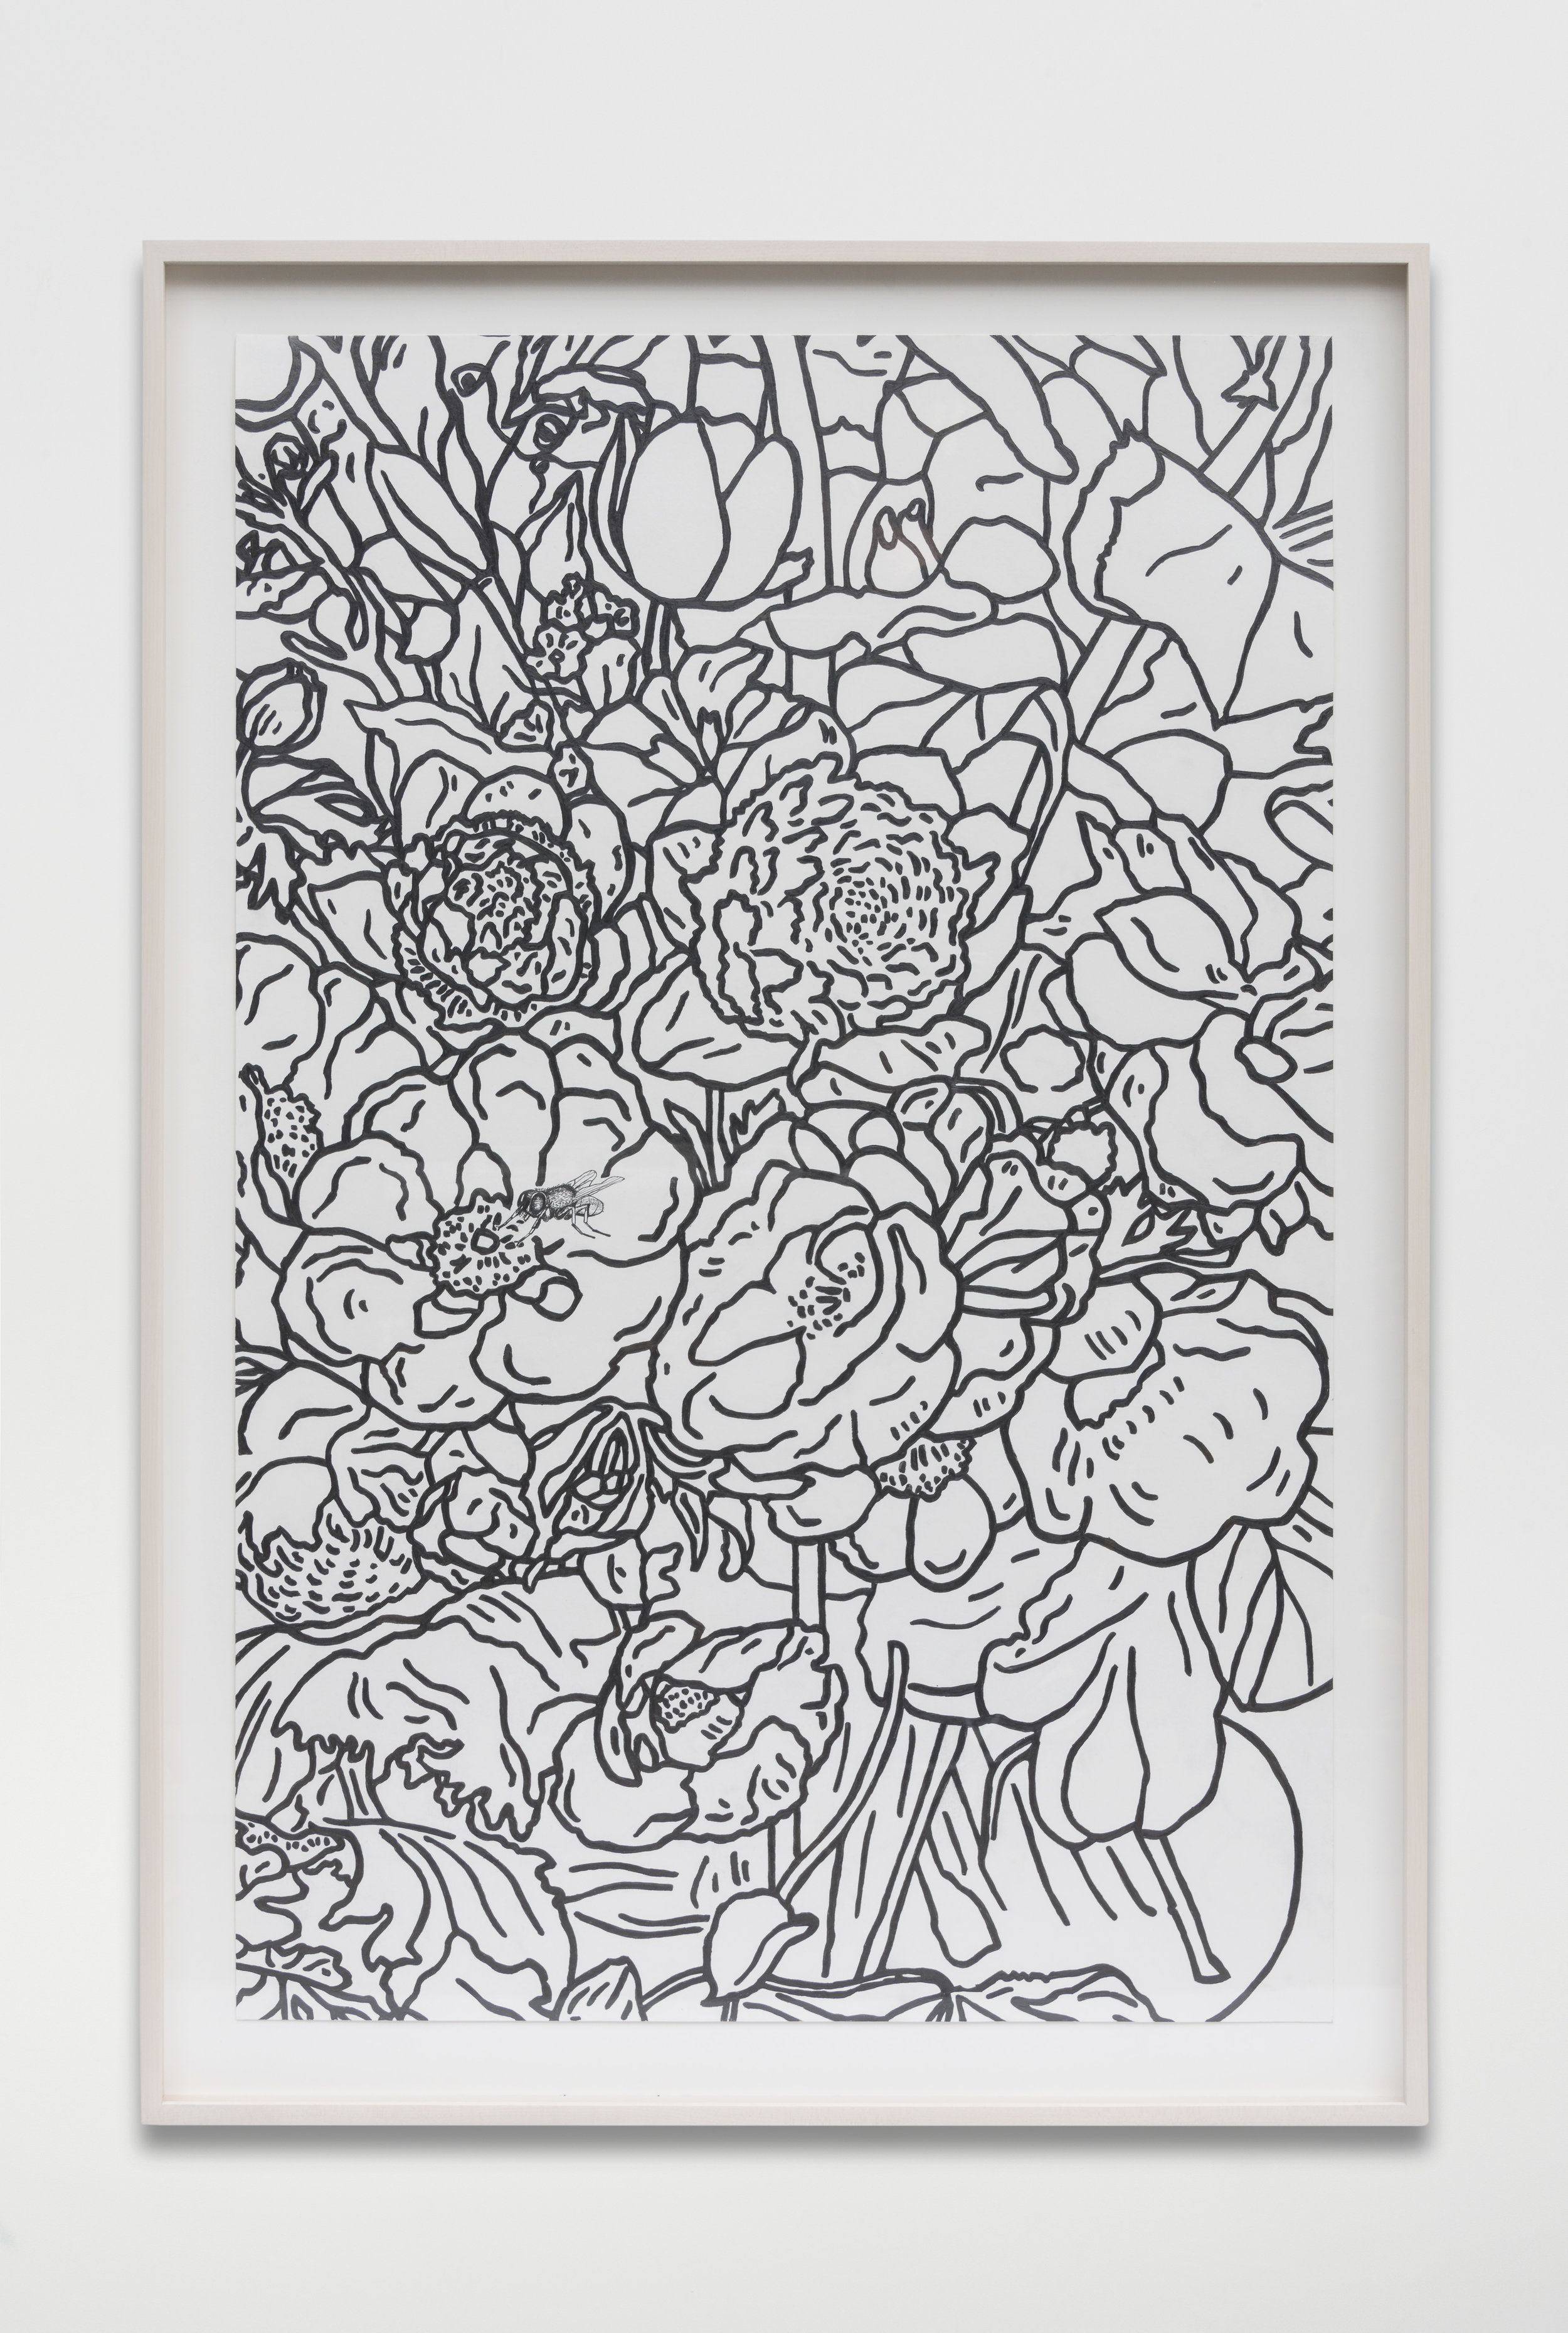 Nathan Mabry, Bouquet (For Rachel), 2017 graphite on paper 120,7 x 82,5 x 5 cm - 47 1/2 x 32 1/2 x 2 inches (framed)